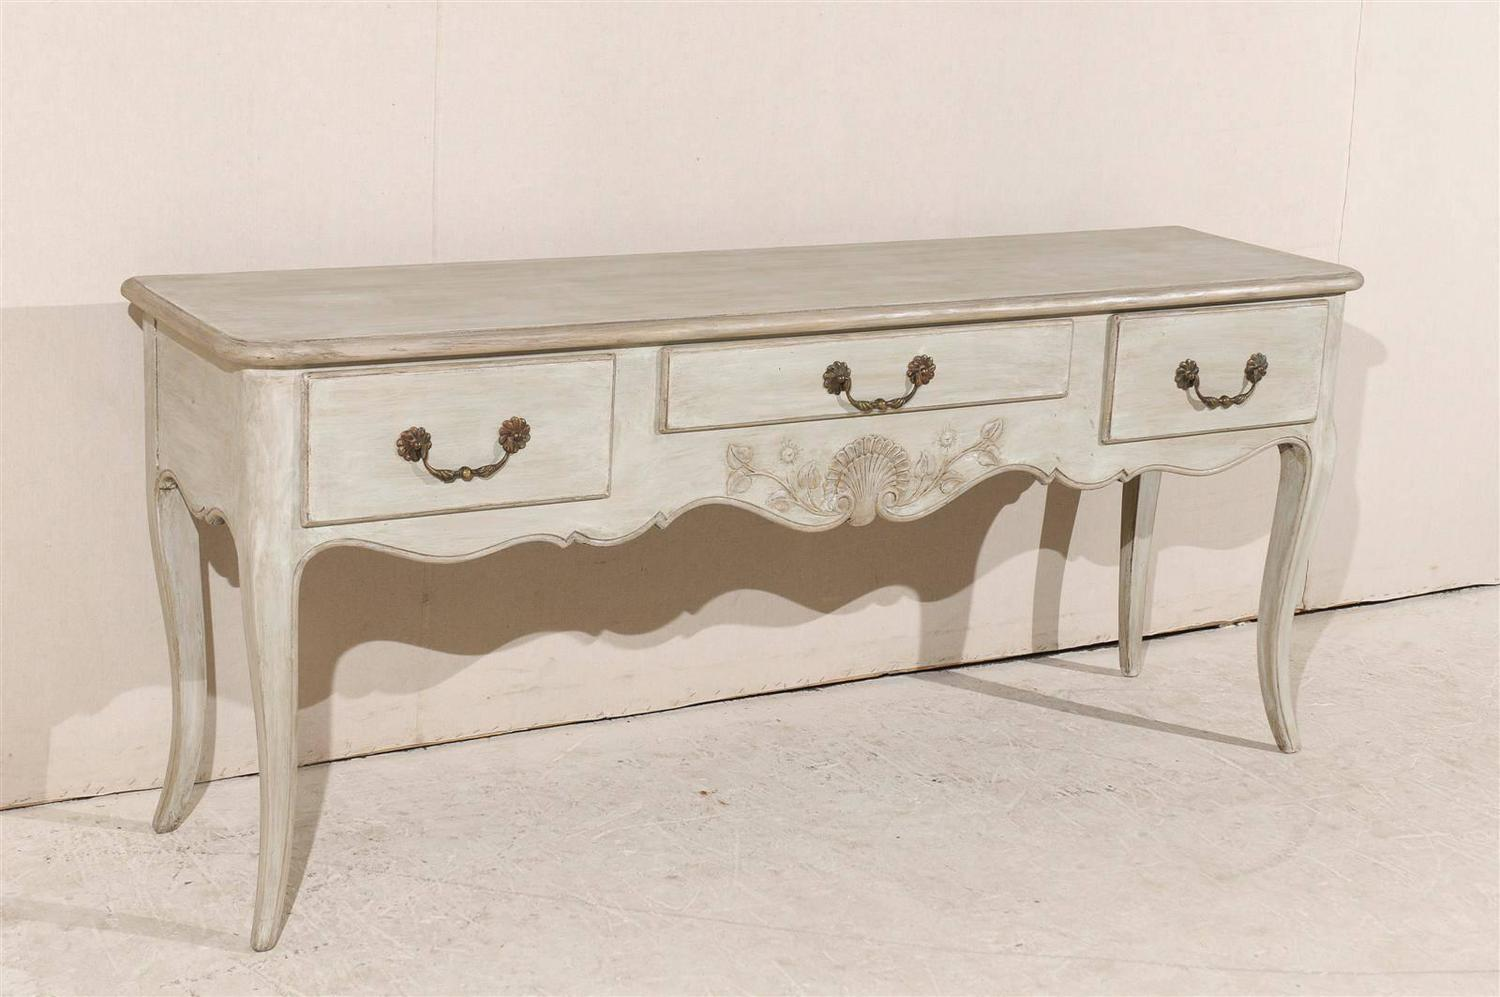 Marvelous photograph of French Painted Three Drawer Wooden Console Table For Sale at 1stdibs with #7F624C color and 1500x997 pixels